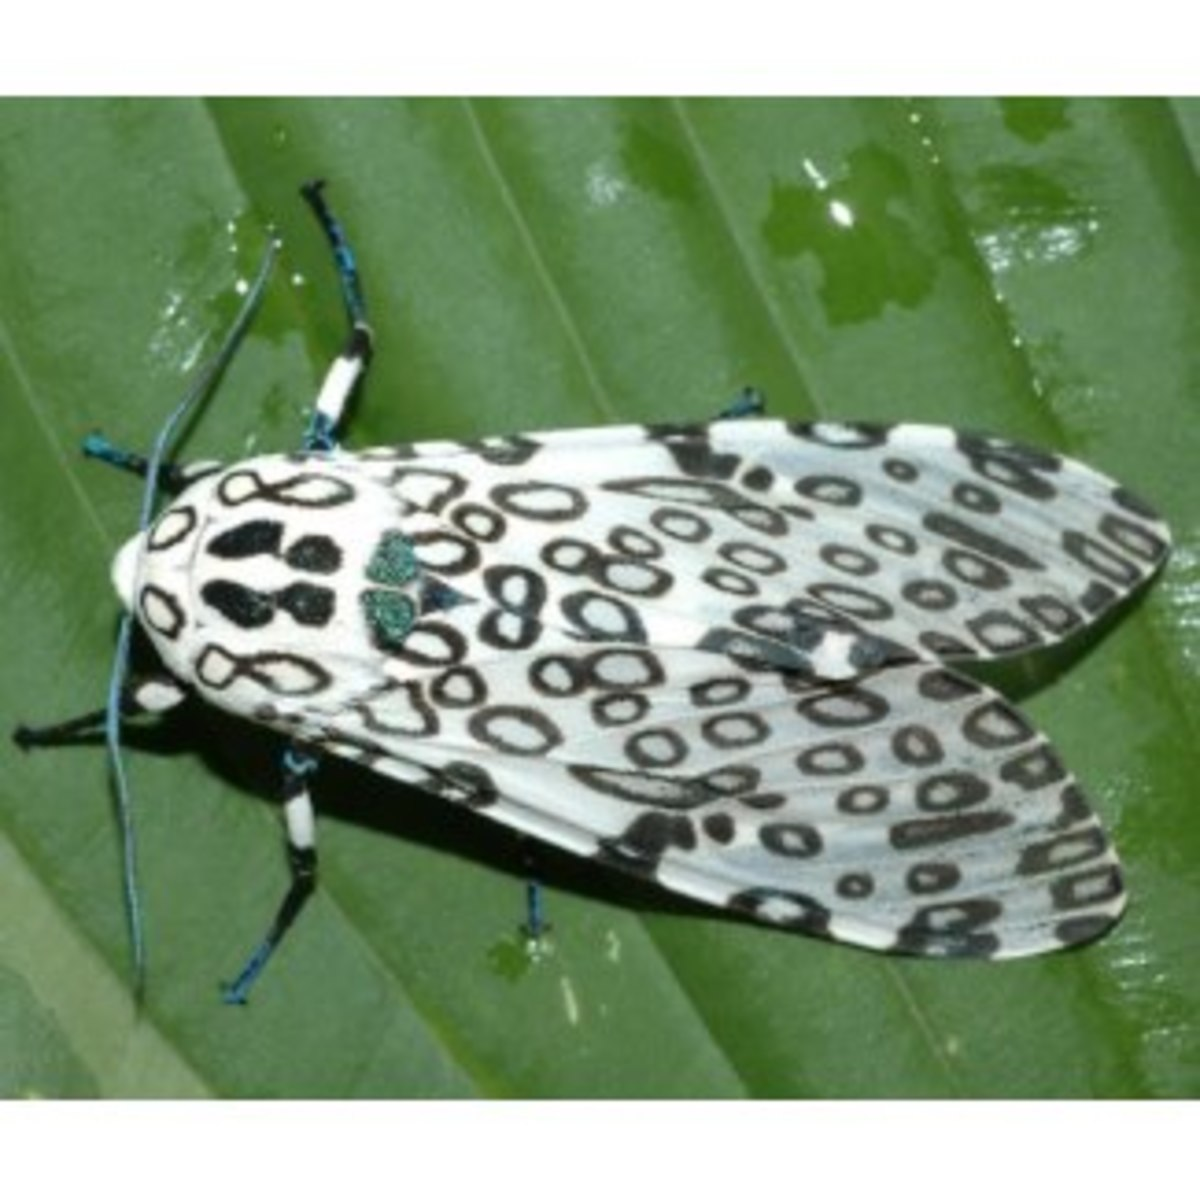 This is the moth that goes with the caterpillar above.